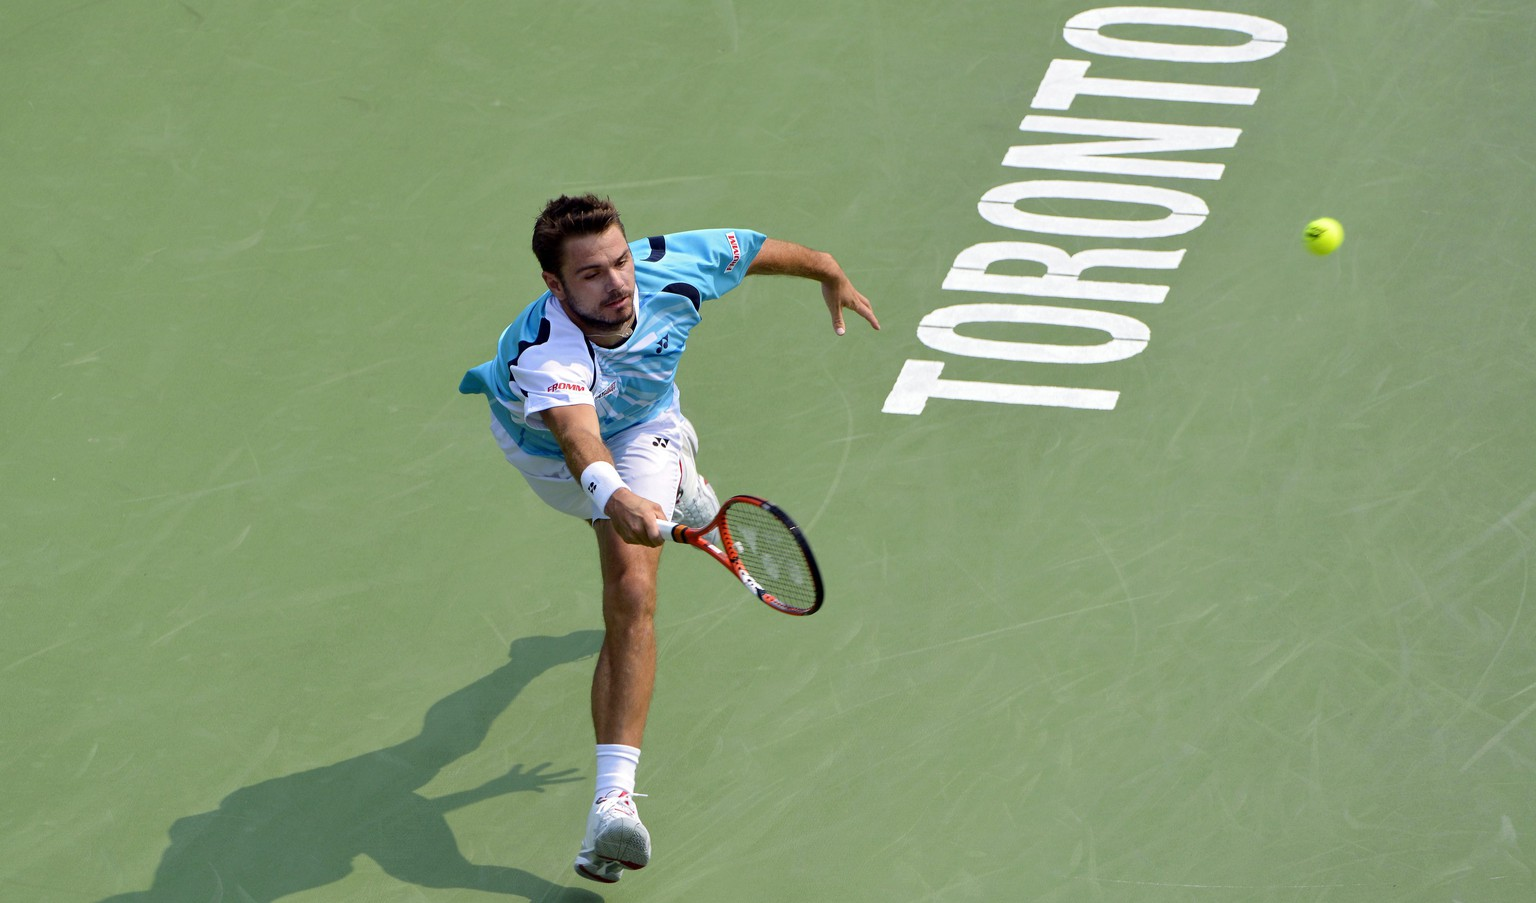 epa04344556 Swiss Stanislas Wawrinka returns the ball to South Africa's Kevin Anderson during their third round match at the Rogers Cup mens tennis tournament in Toronto, Canada, 07 August 2014.  EPA/WARREN TODA